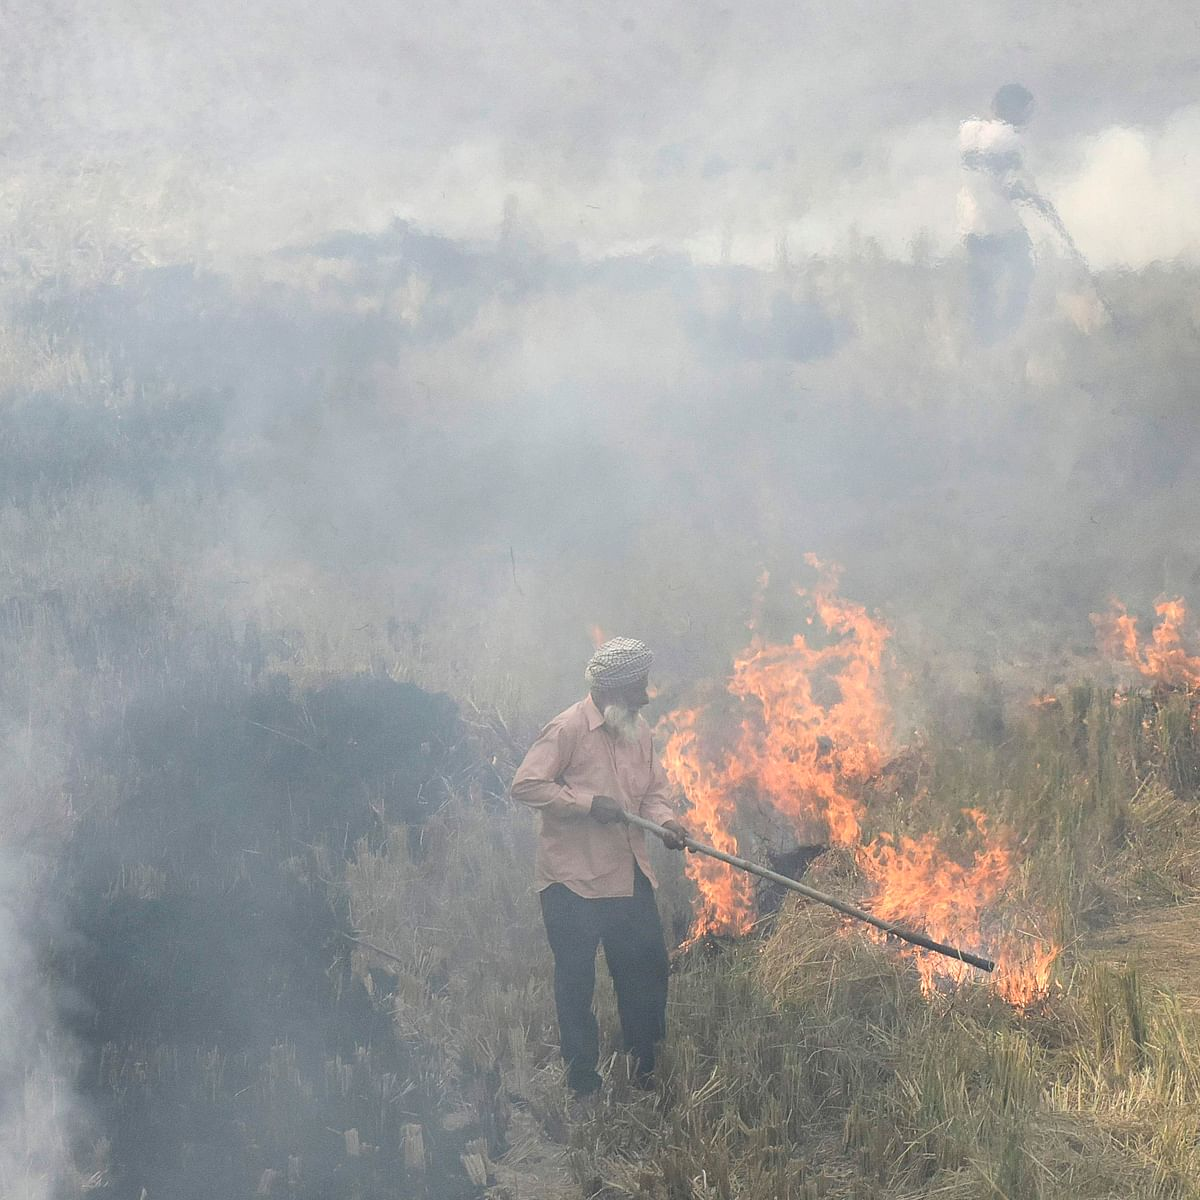 29 farmers arrested for stubble burning in UP's Pilibhit, over 800 FIRs filed